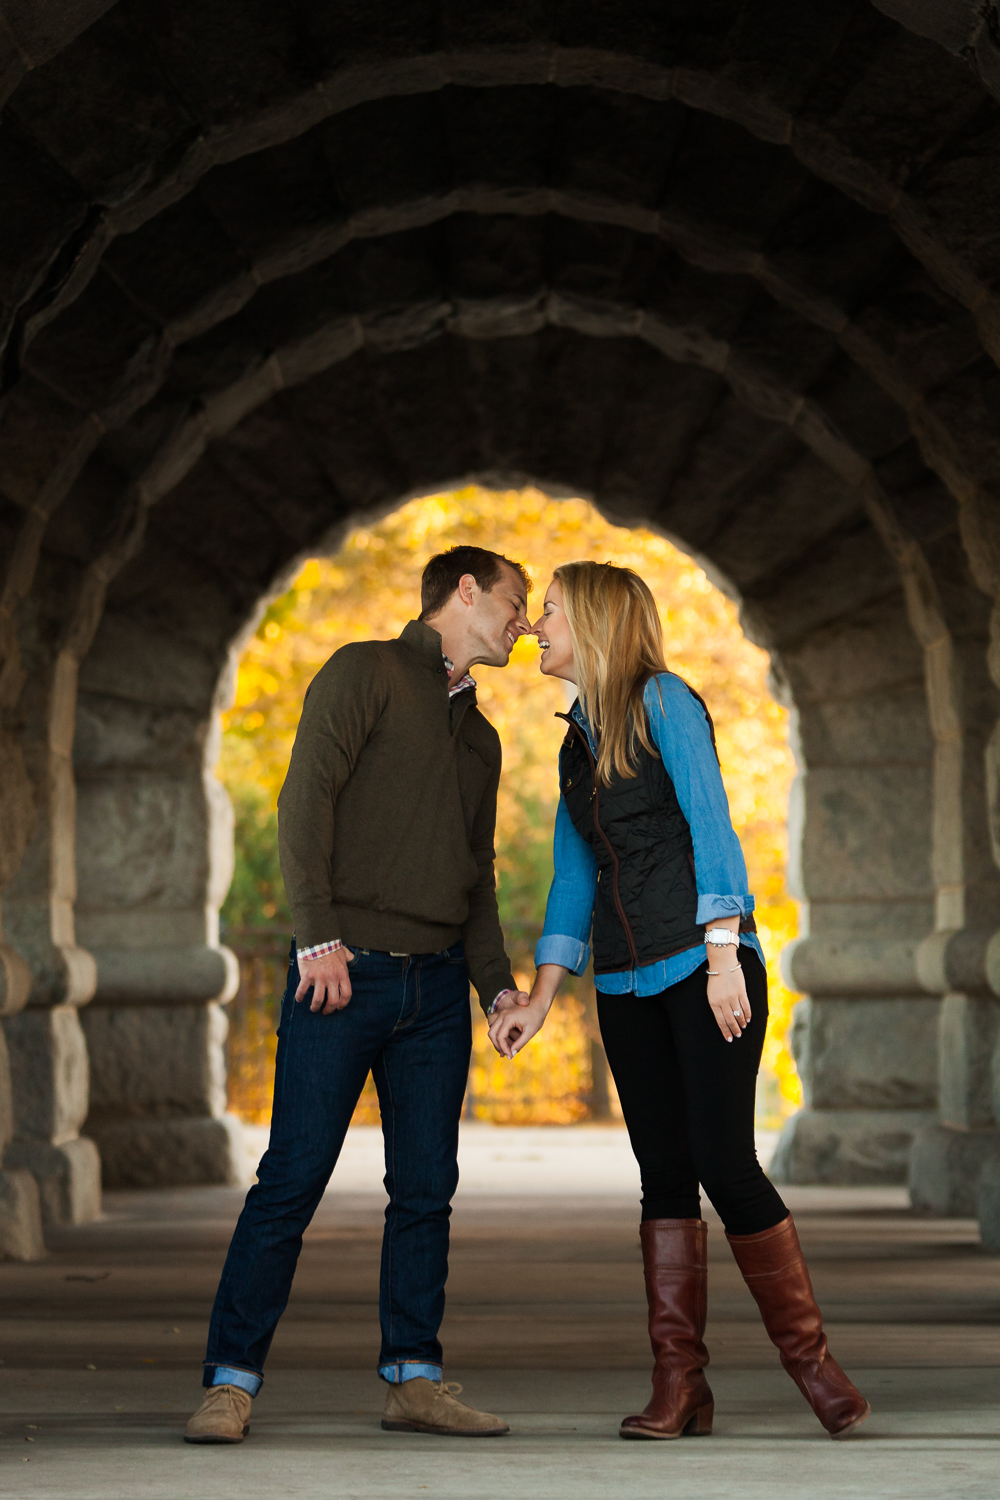 Sarah-Brett-Chicago-Engagement-Photography-7.jpg